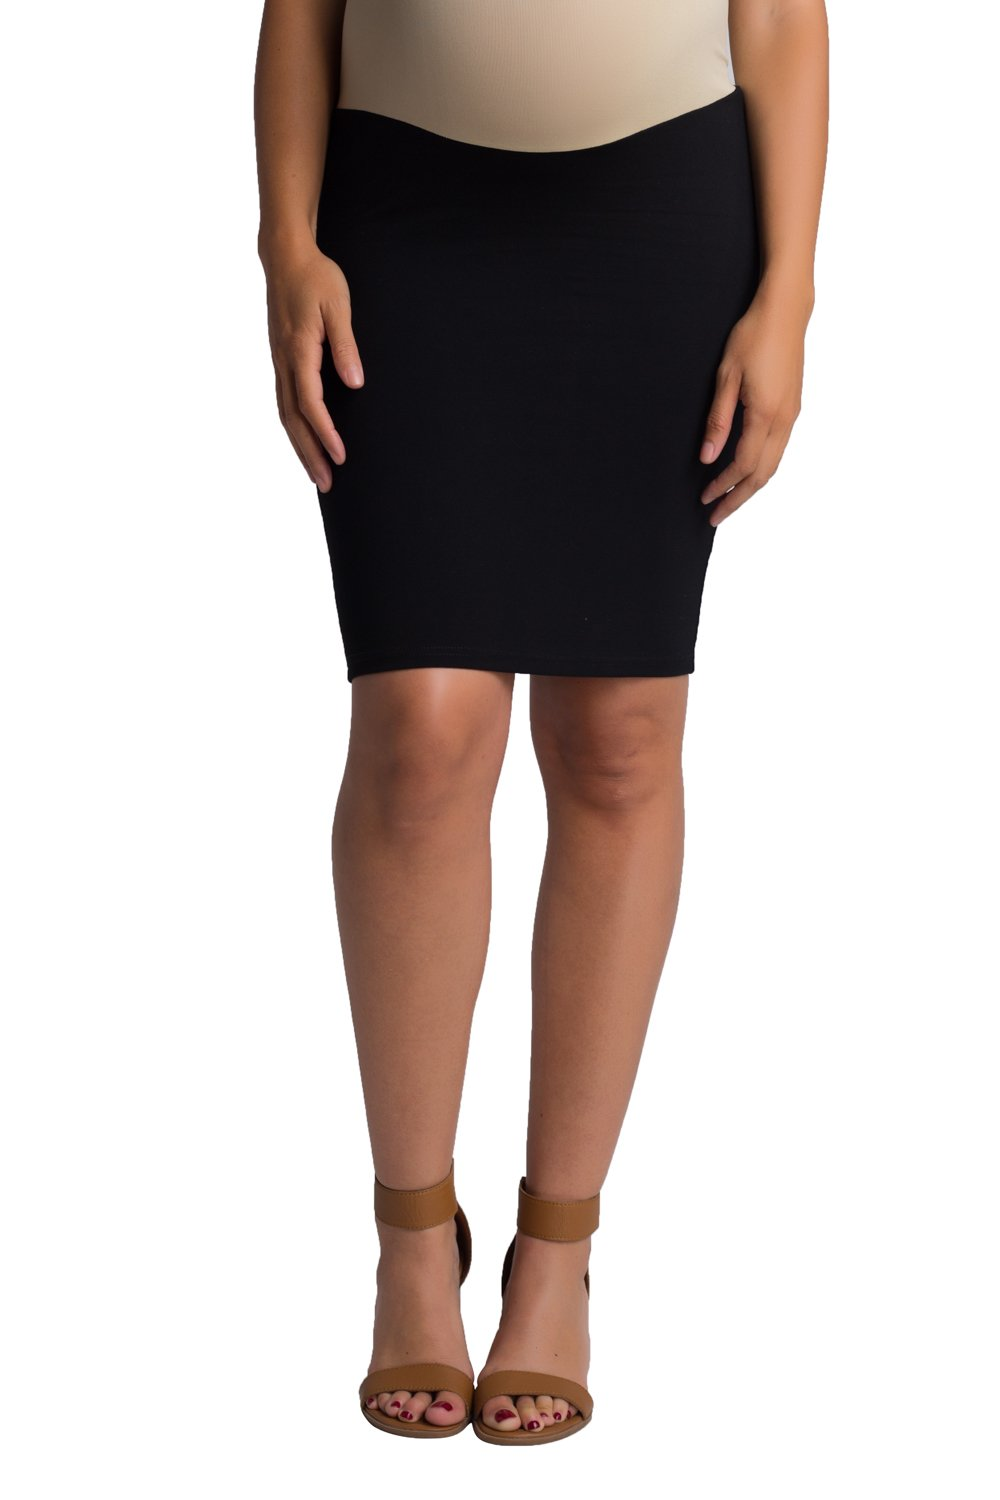 Ellie Flora Women's Over The Belly Super Soft Rayon Ponte Maternity Career Pencil Skirt